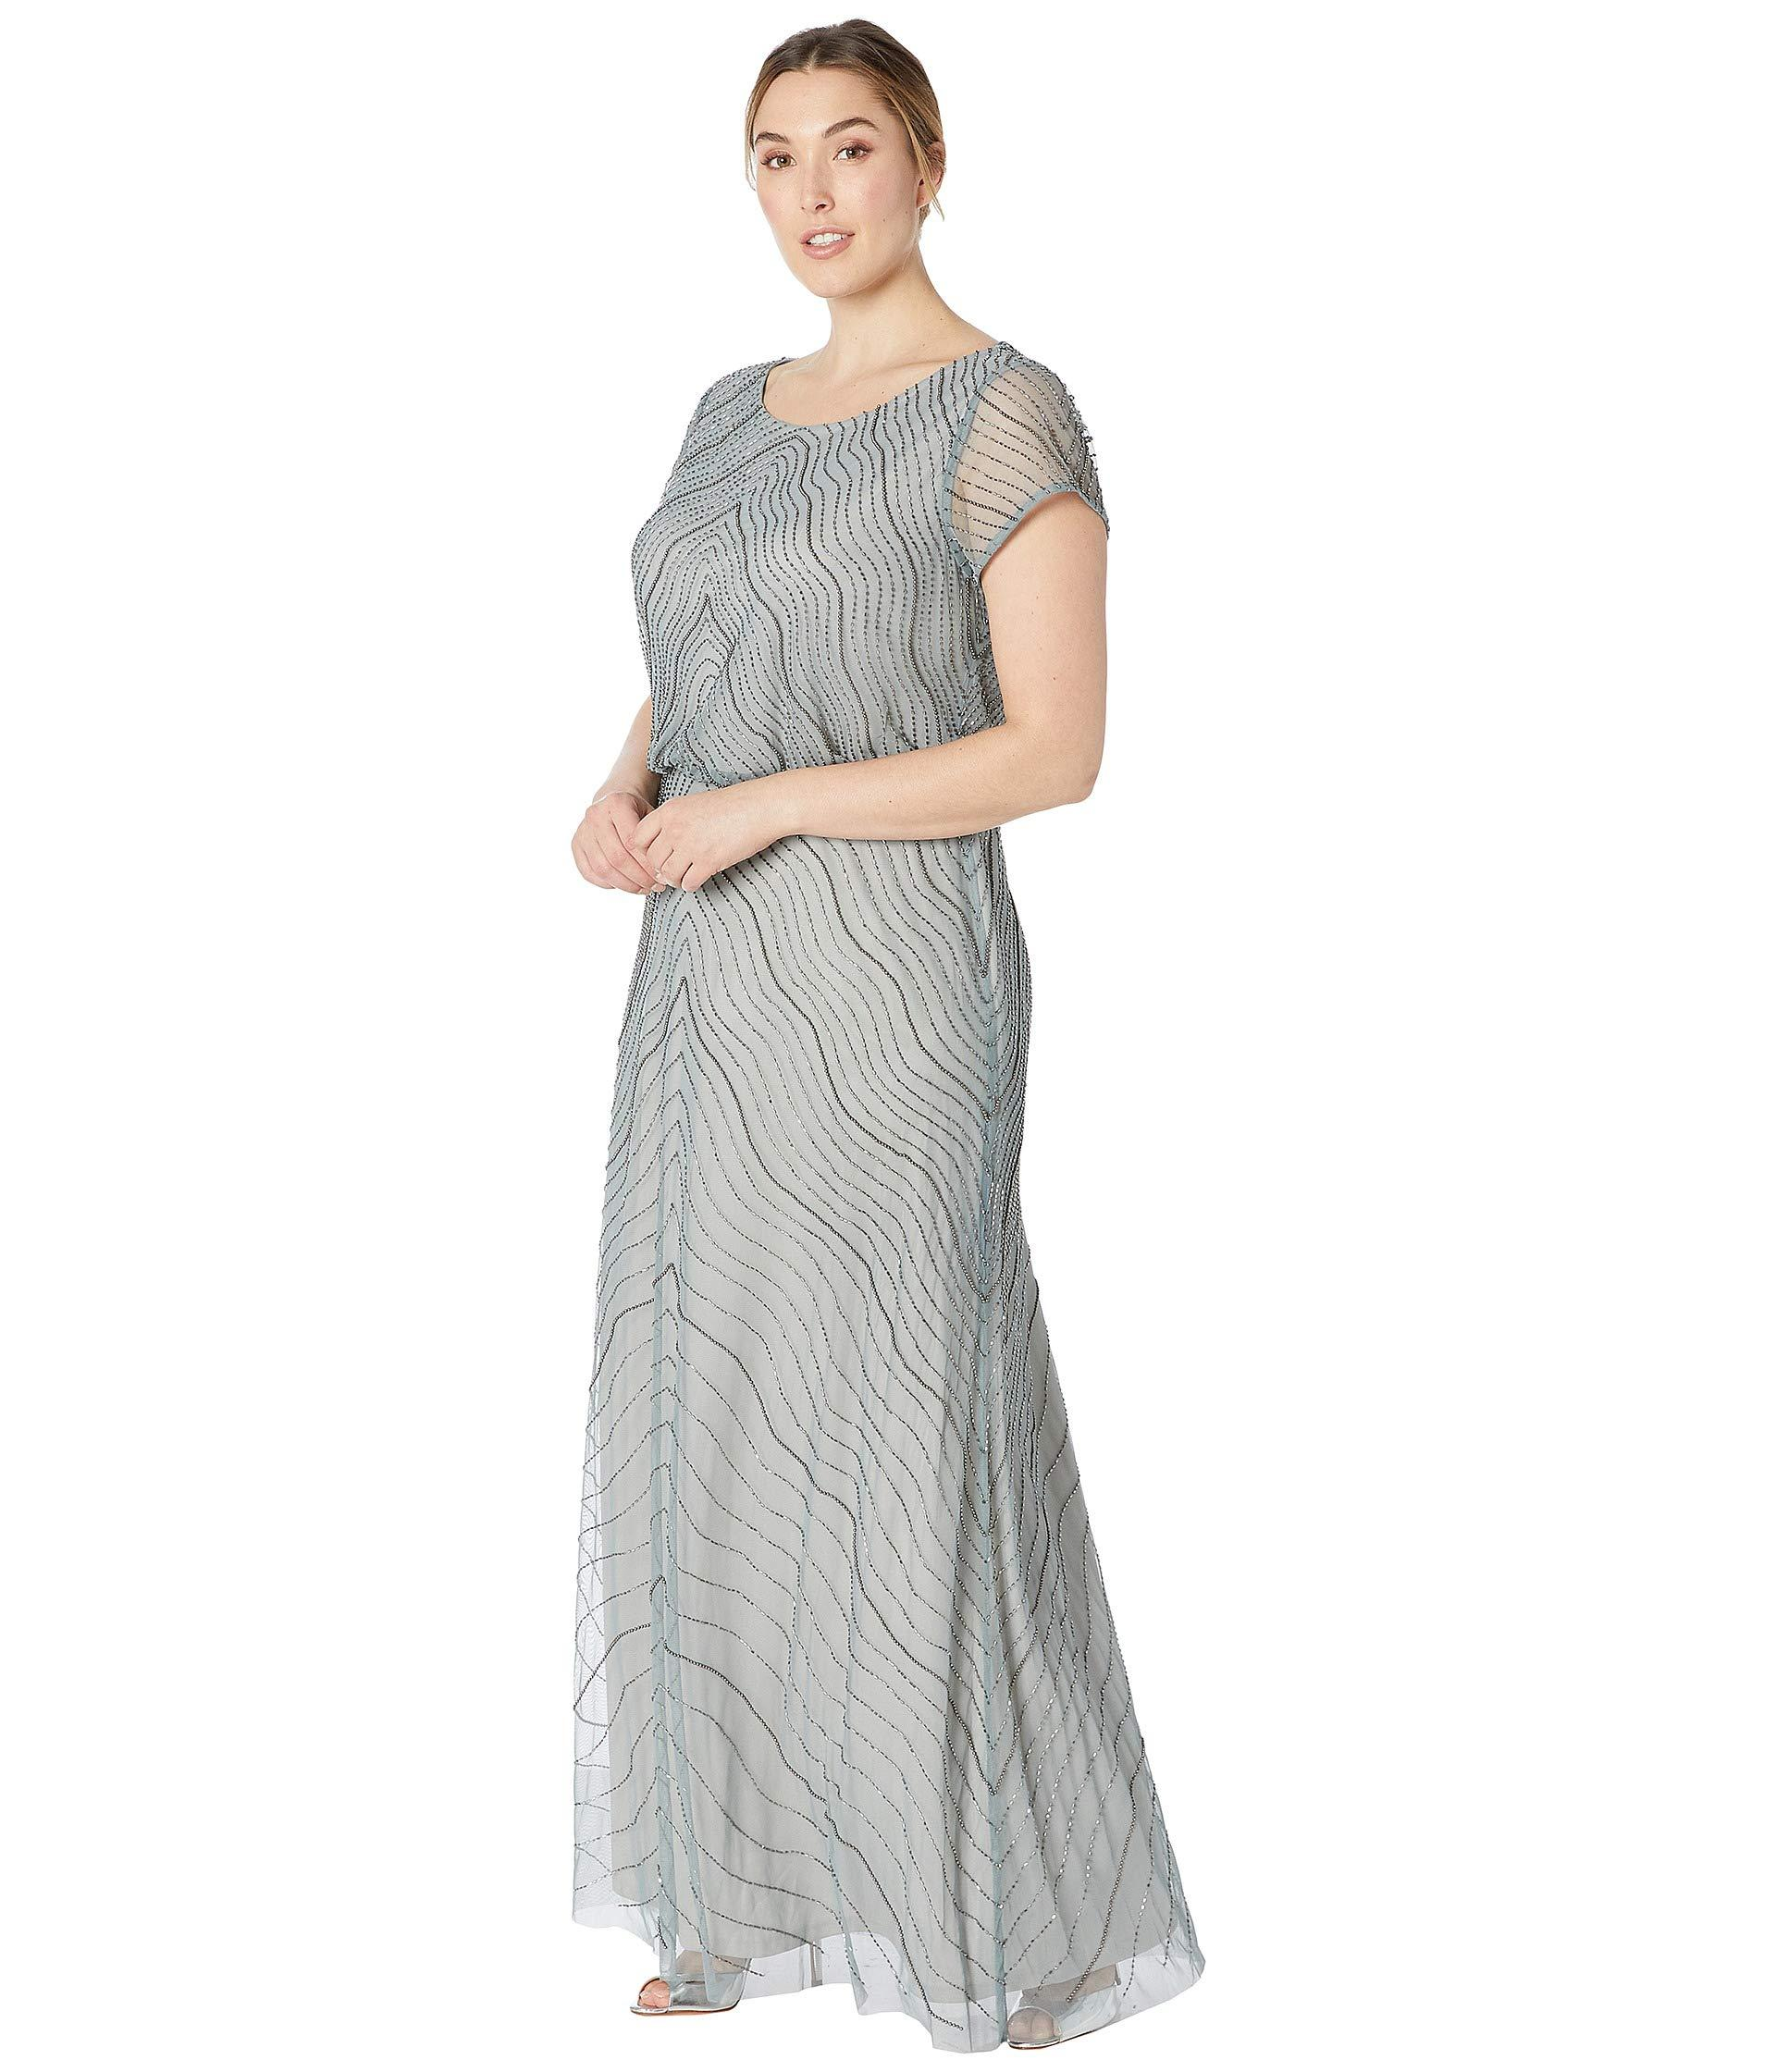 28650f39e9e Lyst - Adrianna Papell Plus Size Beaded Blouson Cap Sleeve Evening Gown  (slate) Women s Dress in Gray